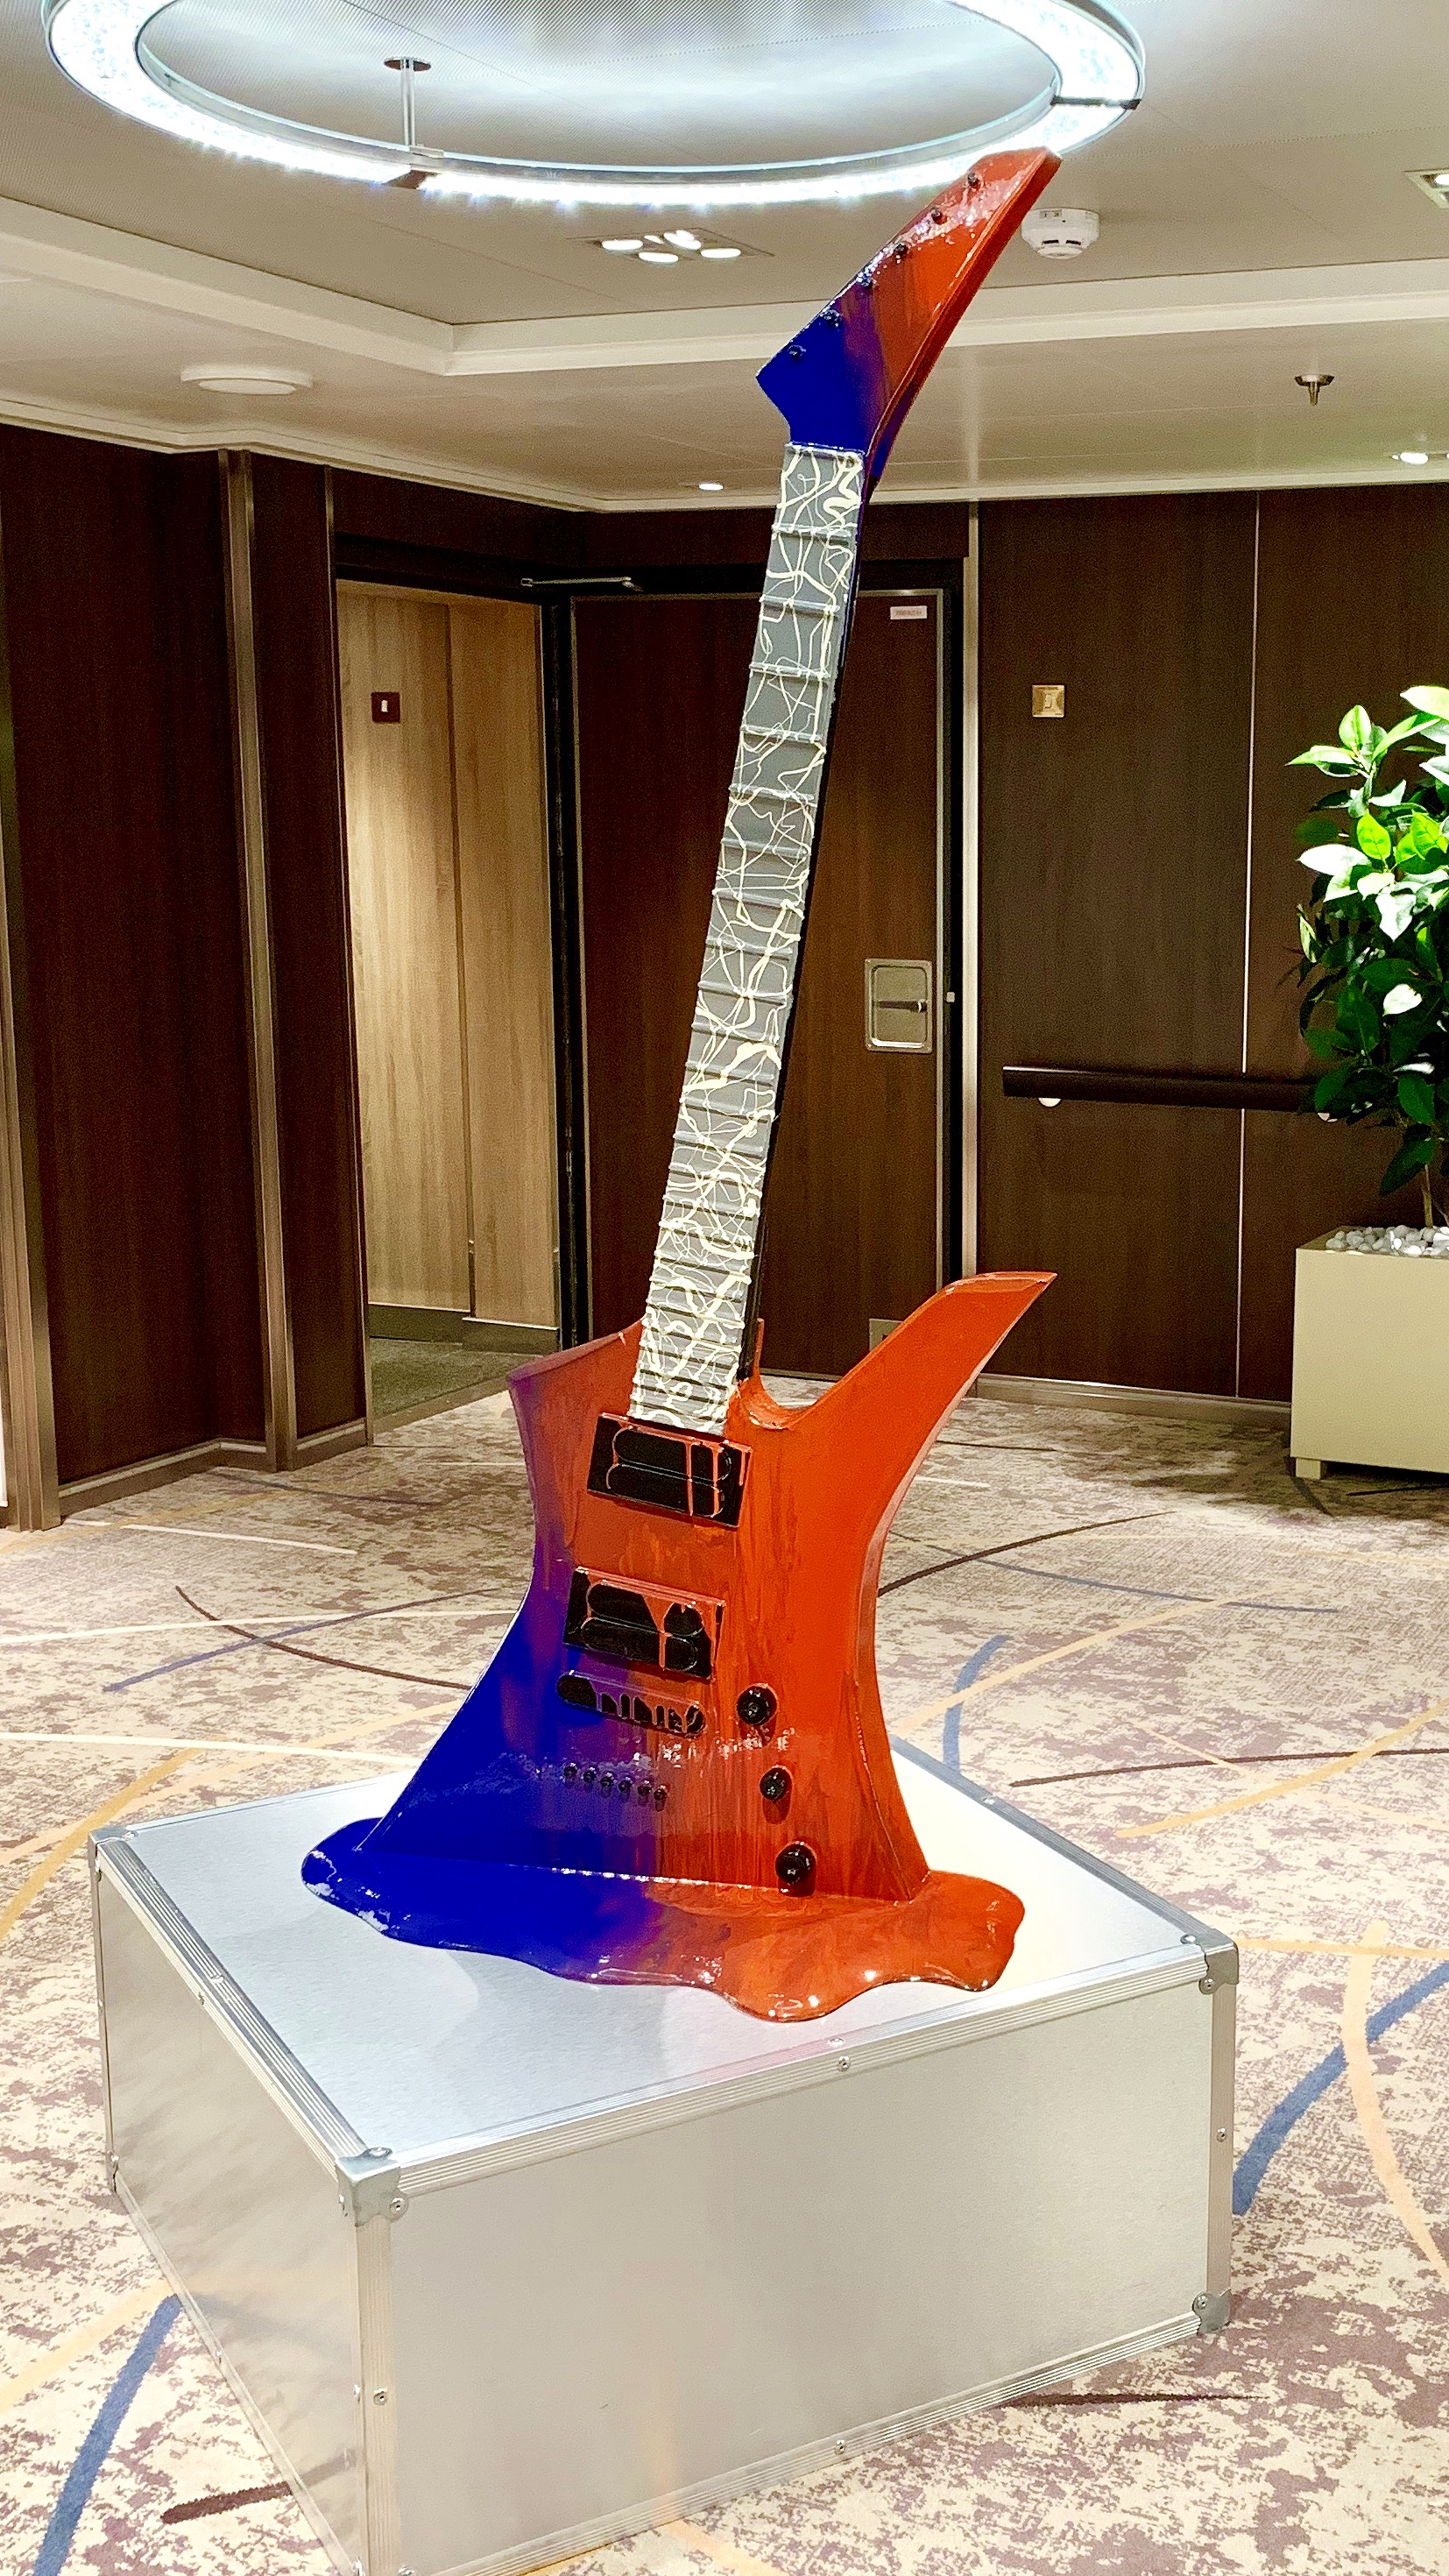 Guitar art in another lobby